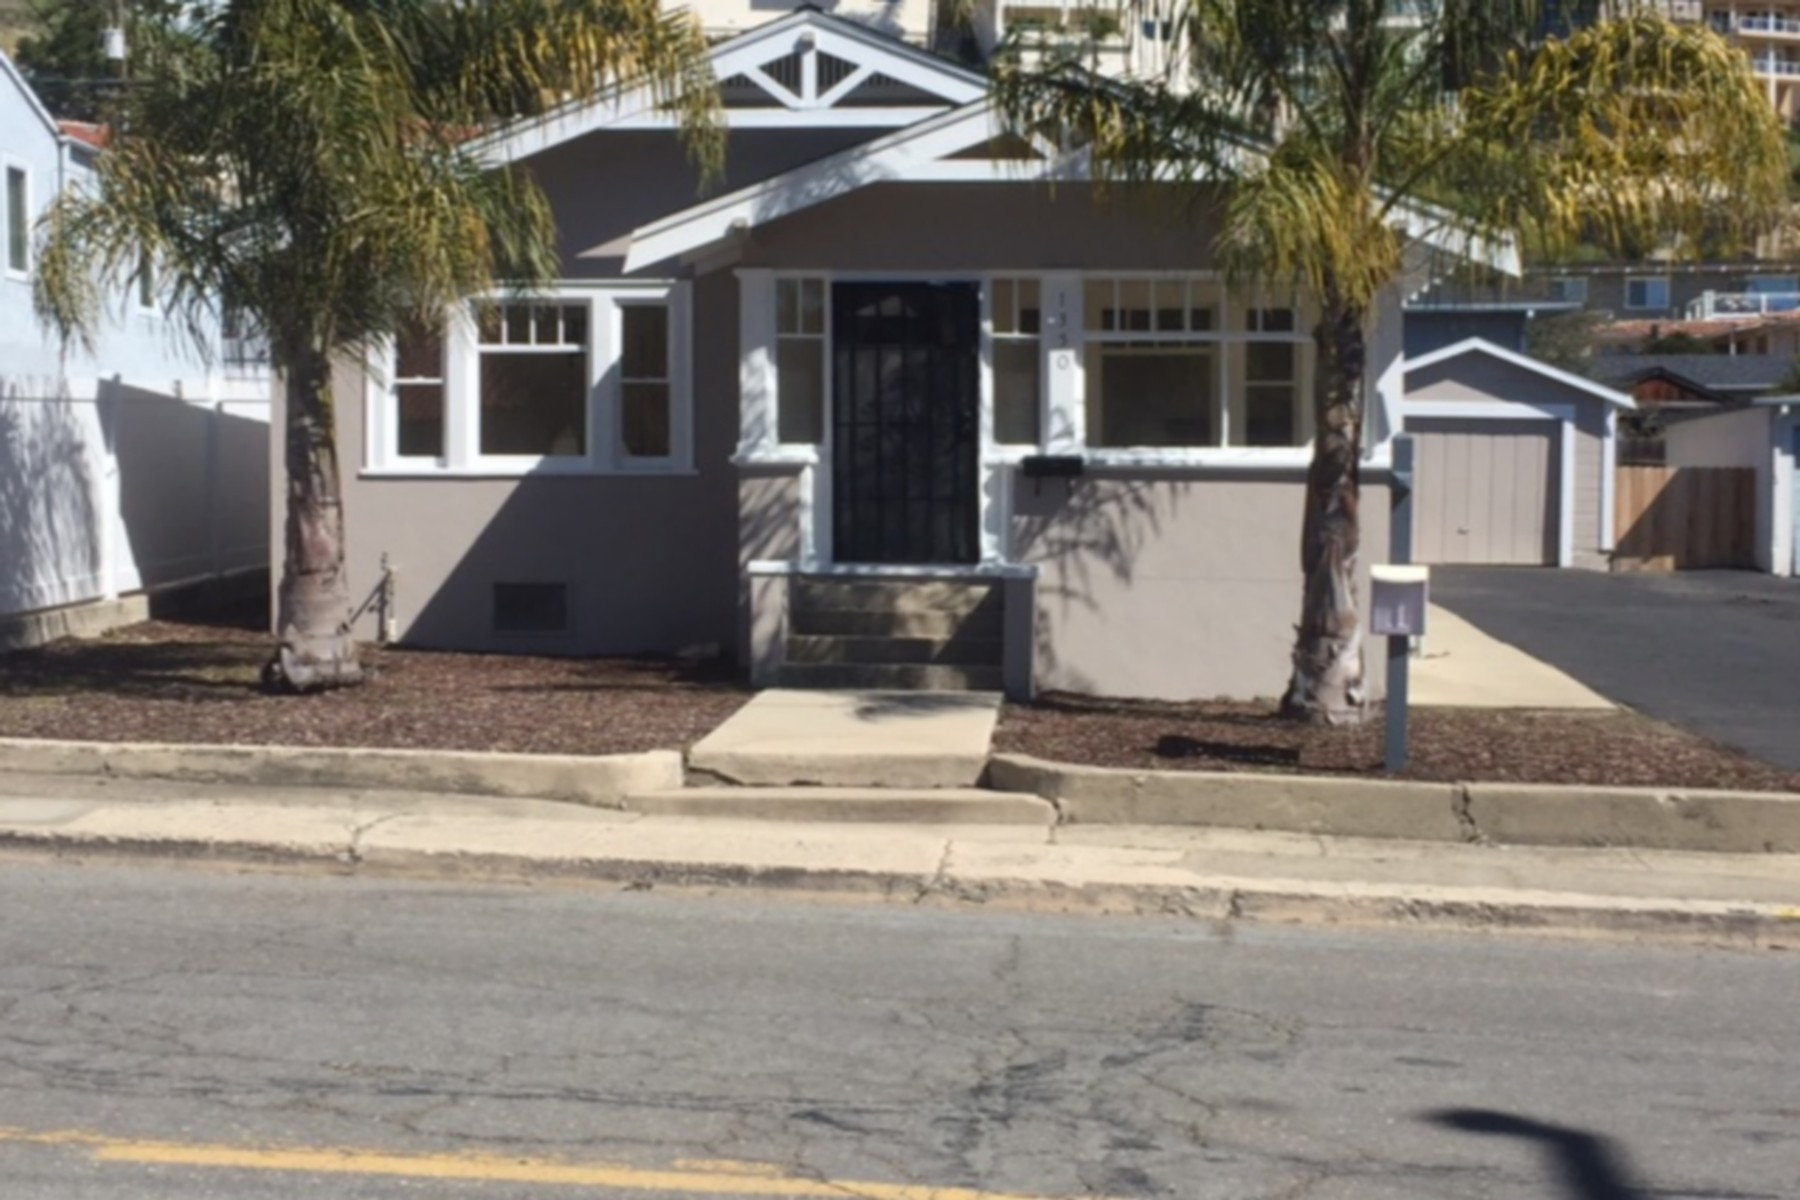 Single Family Home for Sale at 1350 Bello, Pismo Beach Pismo Beach, California, 93449 United States